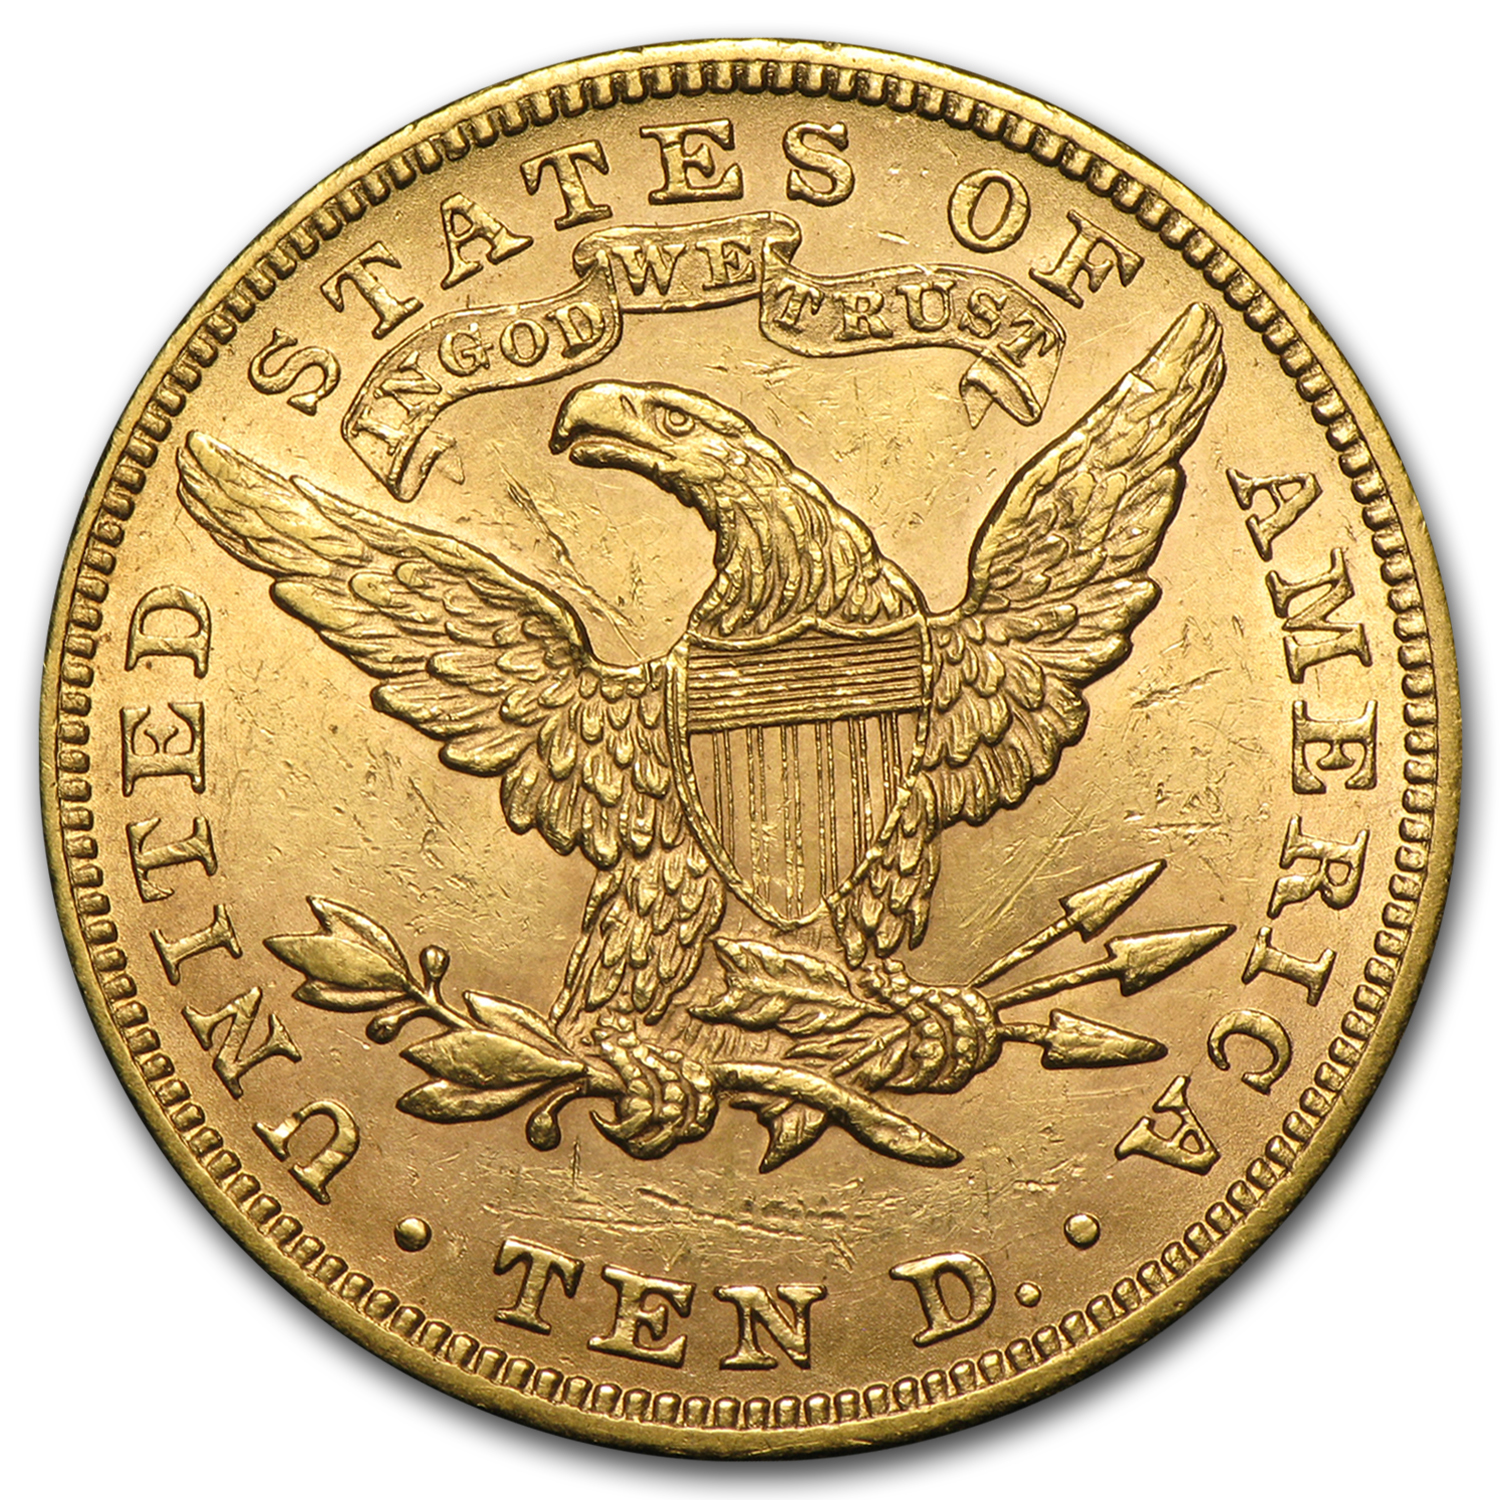 $10 Liberty Gold Eagle - Almost Uncirculated